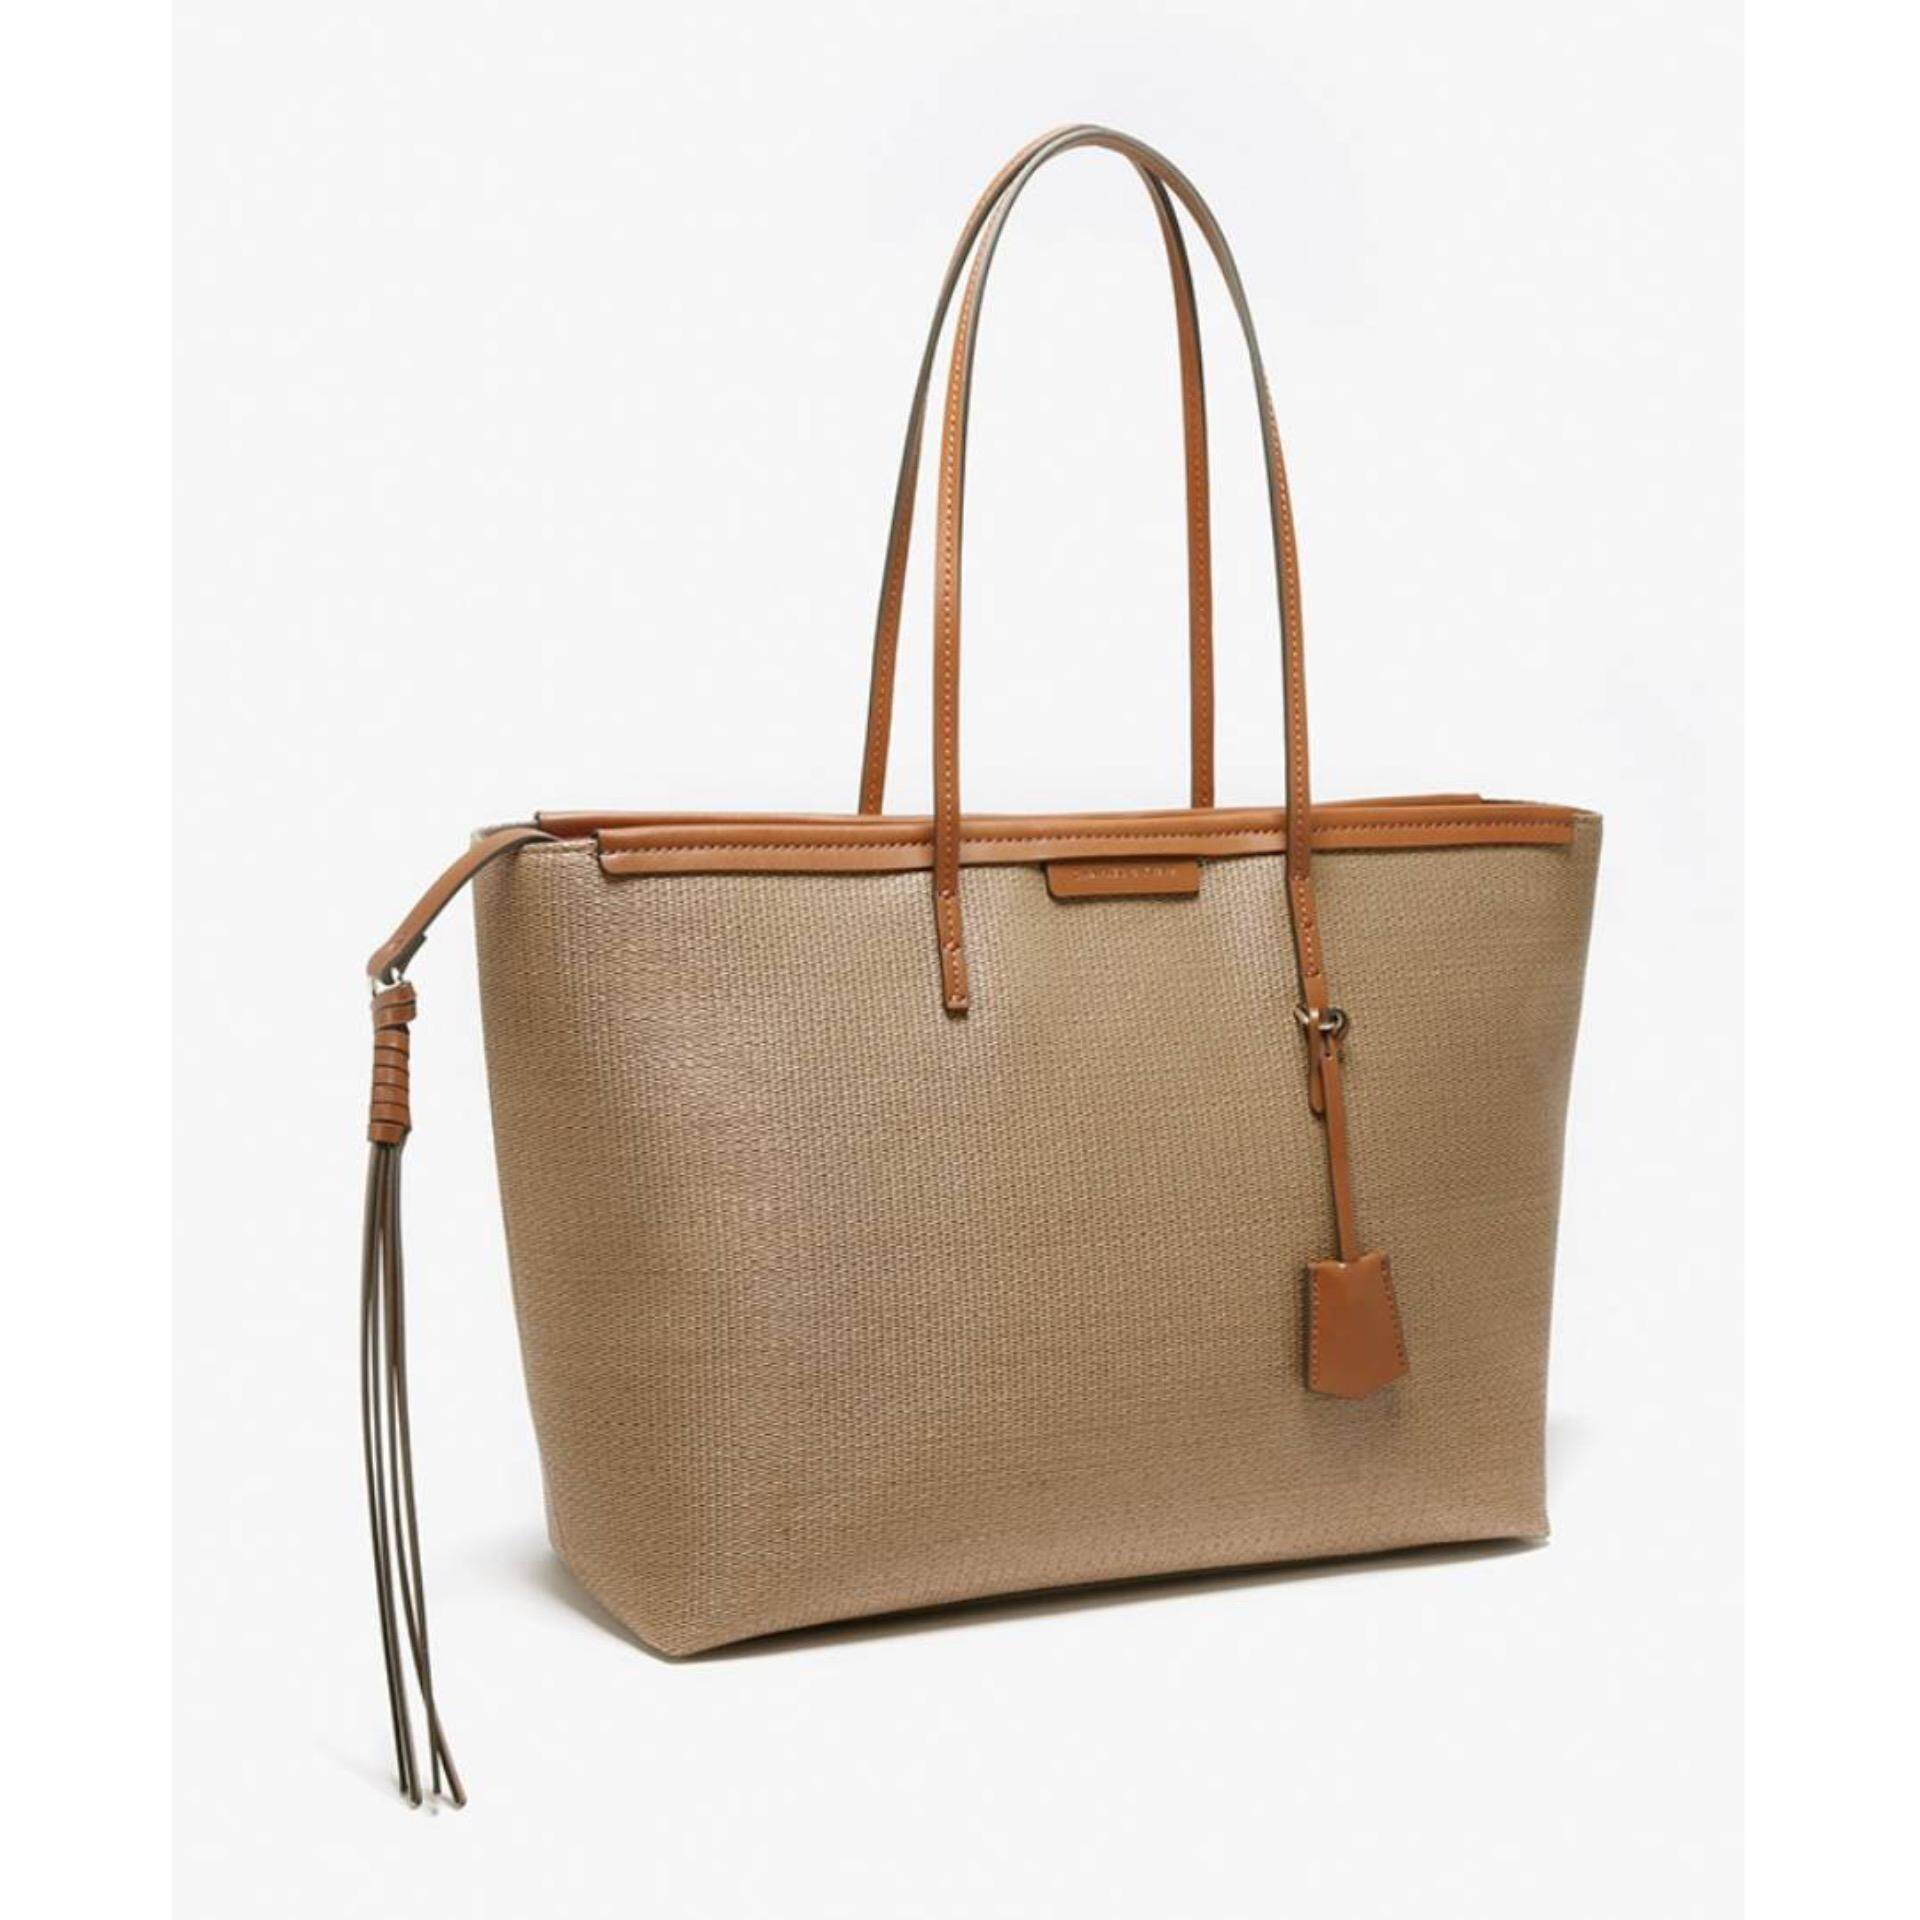 CHARLES&keith TEXURED BAG  กระเป๋า Tote Bag กระเป๋าผู้หญิง